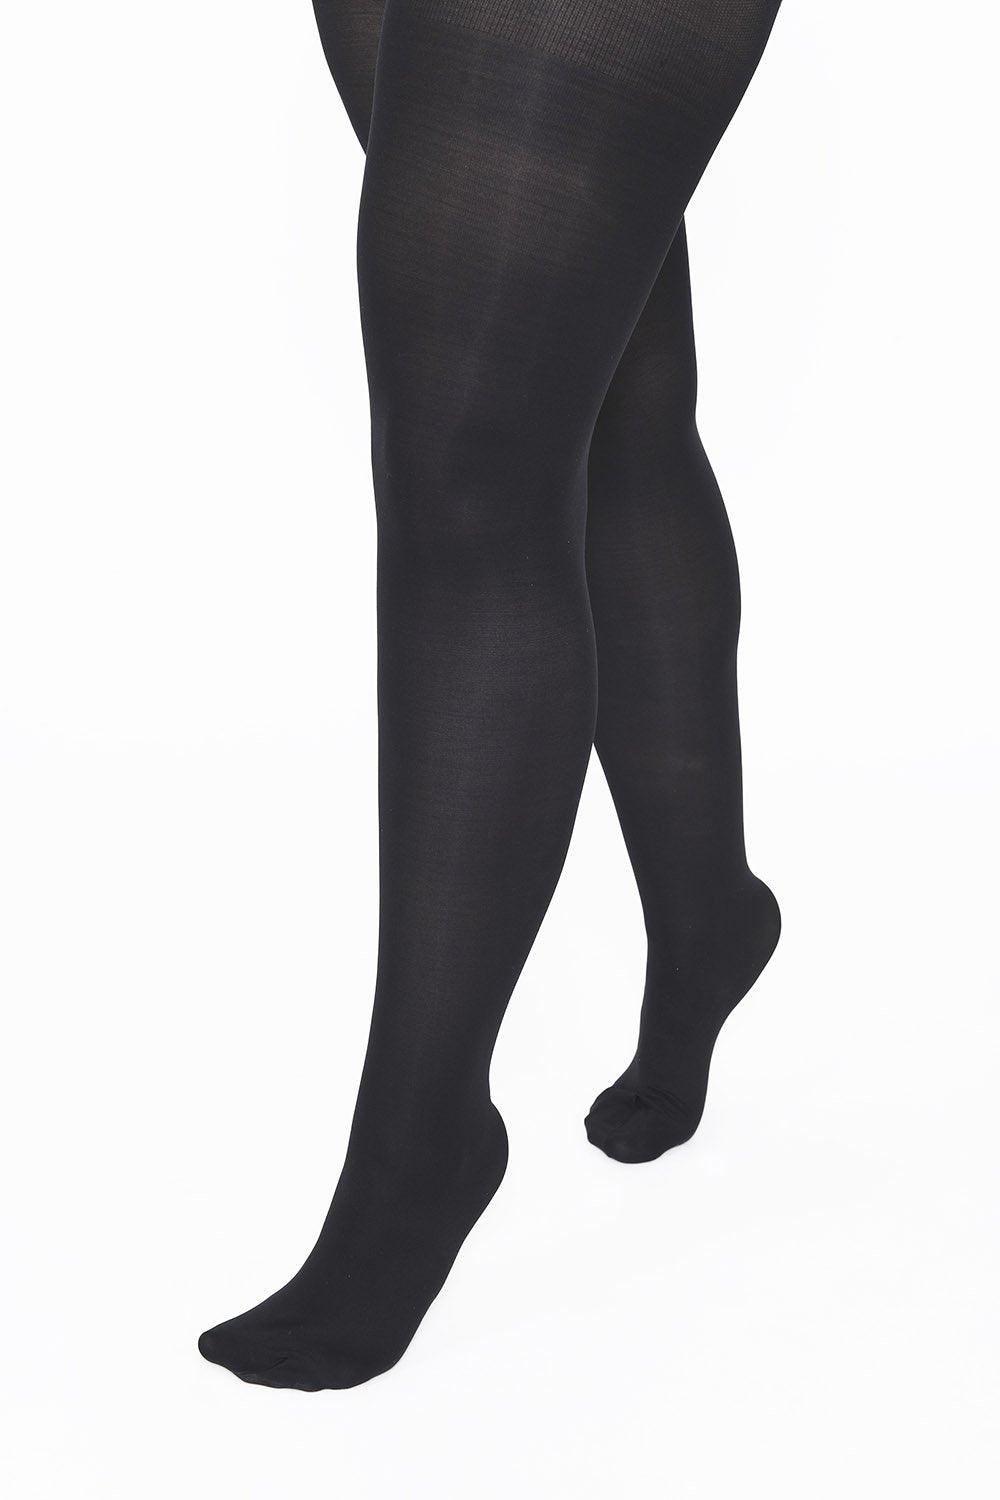 Plus Size Black 60 Denier Tights